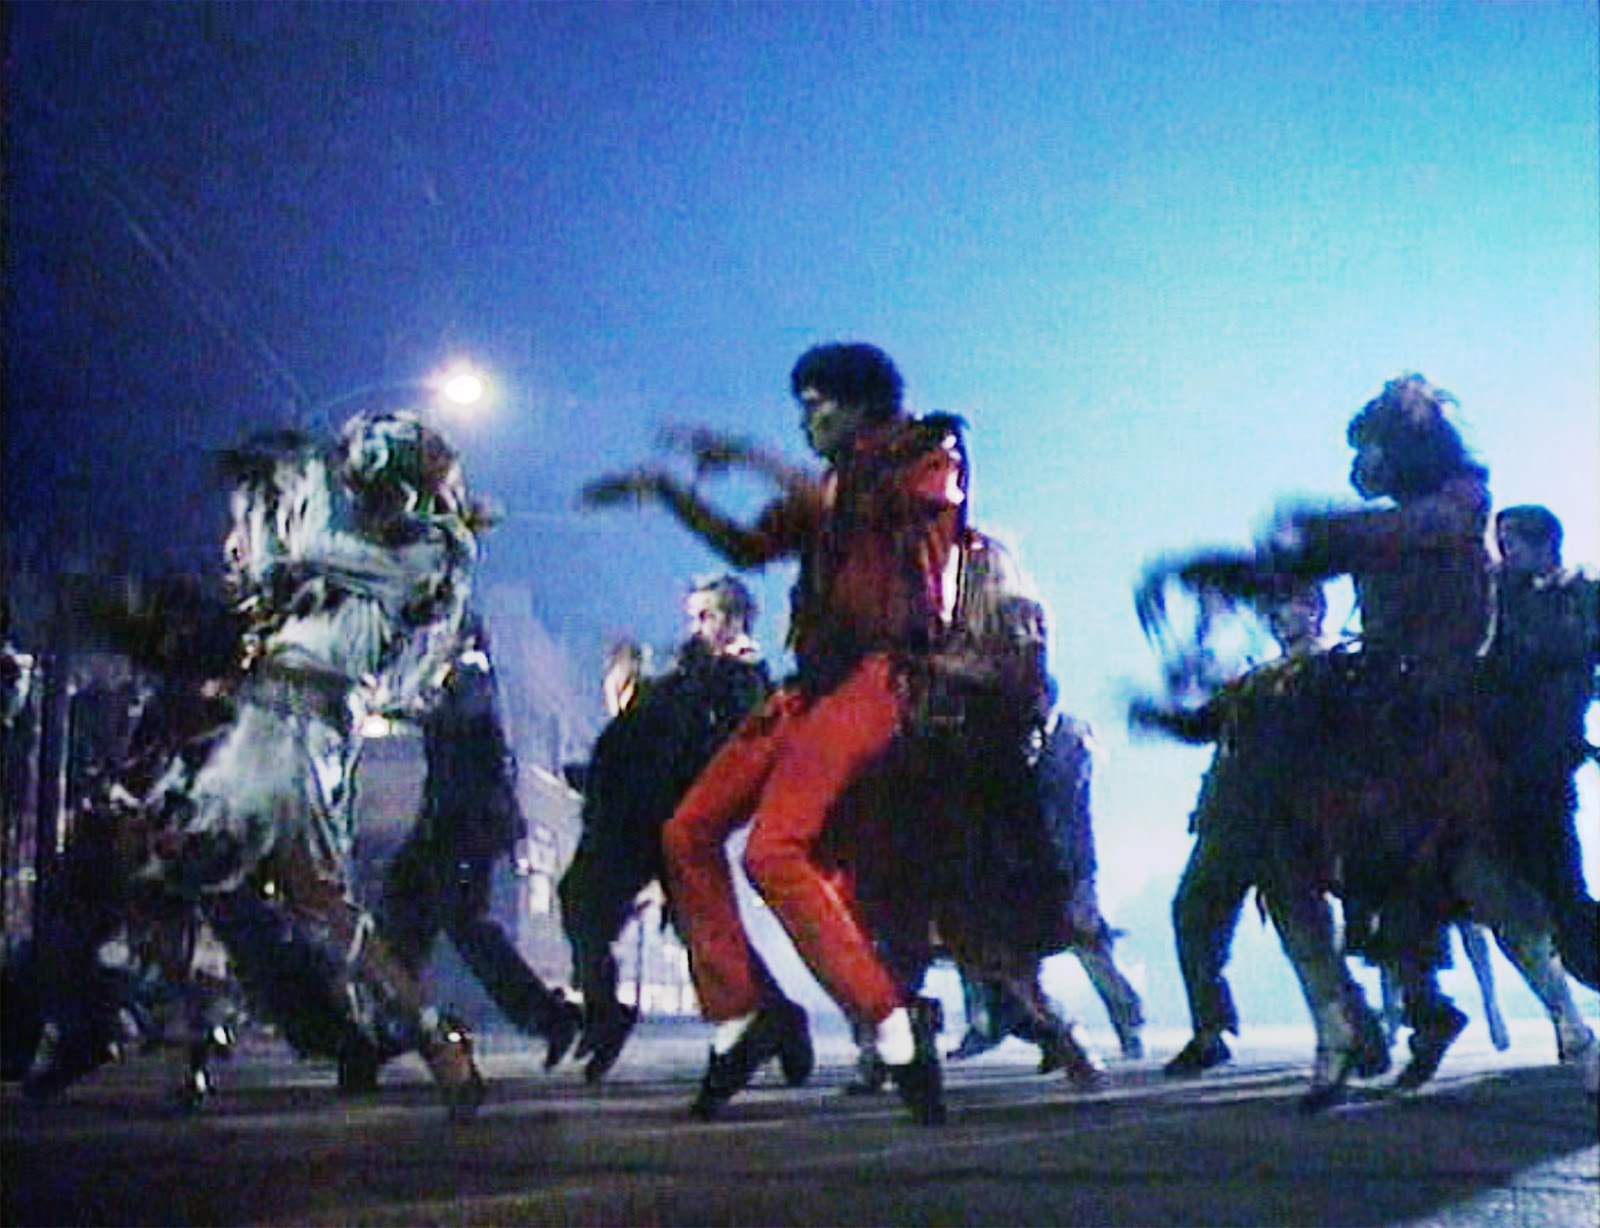 When you and your girlfriends hear your favorite song ... Michael Jackson Thriller Video Dance